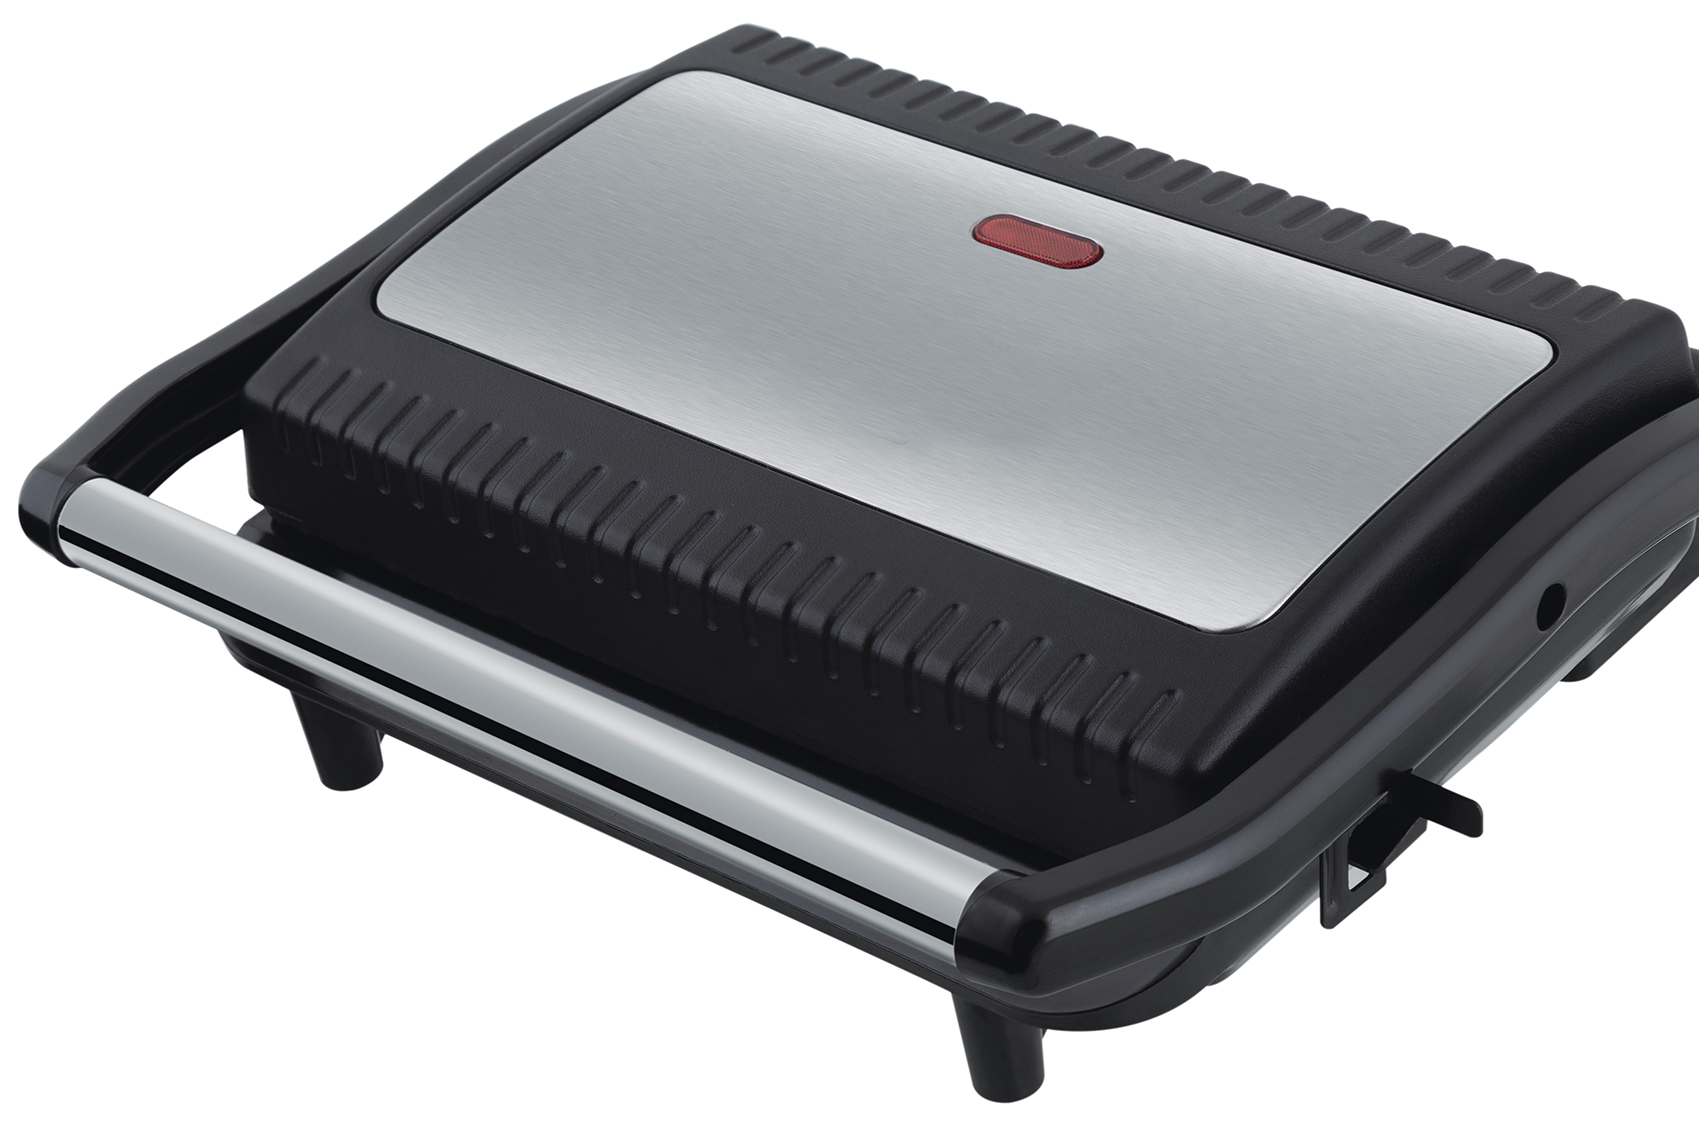 CG016 contact grill